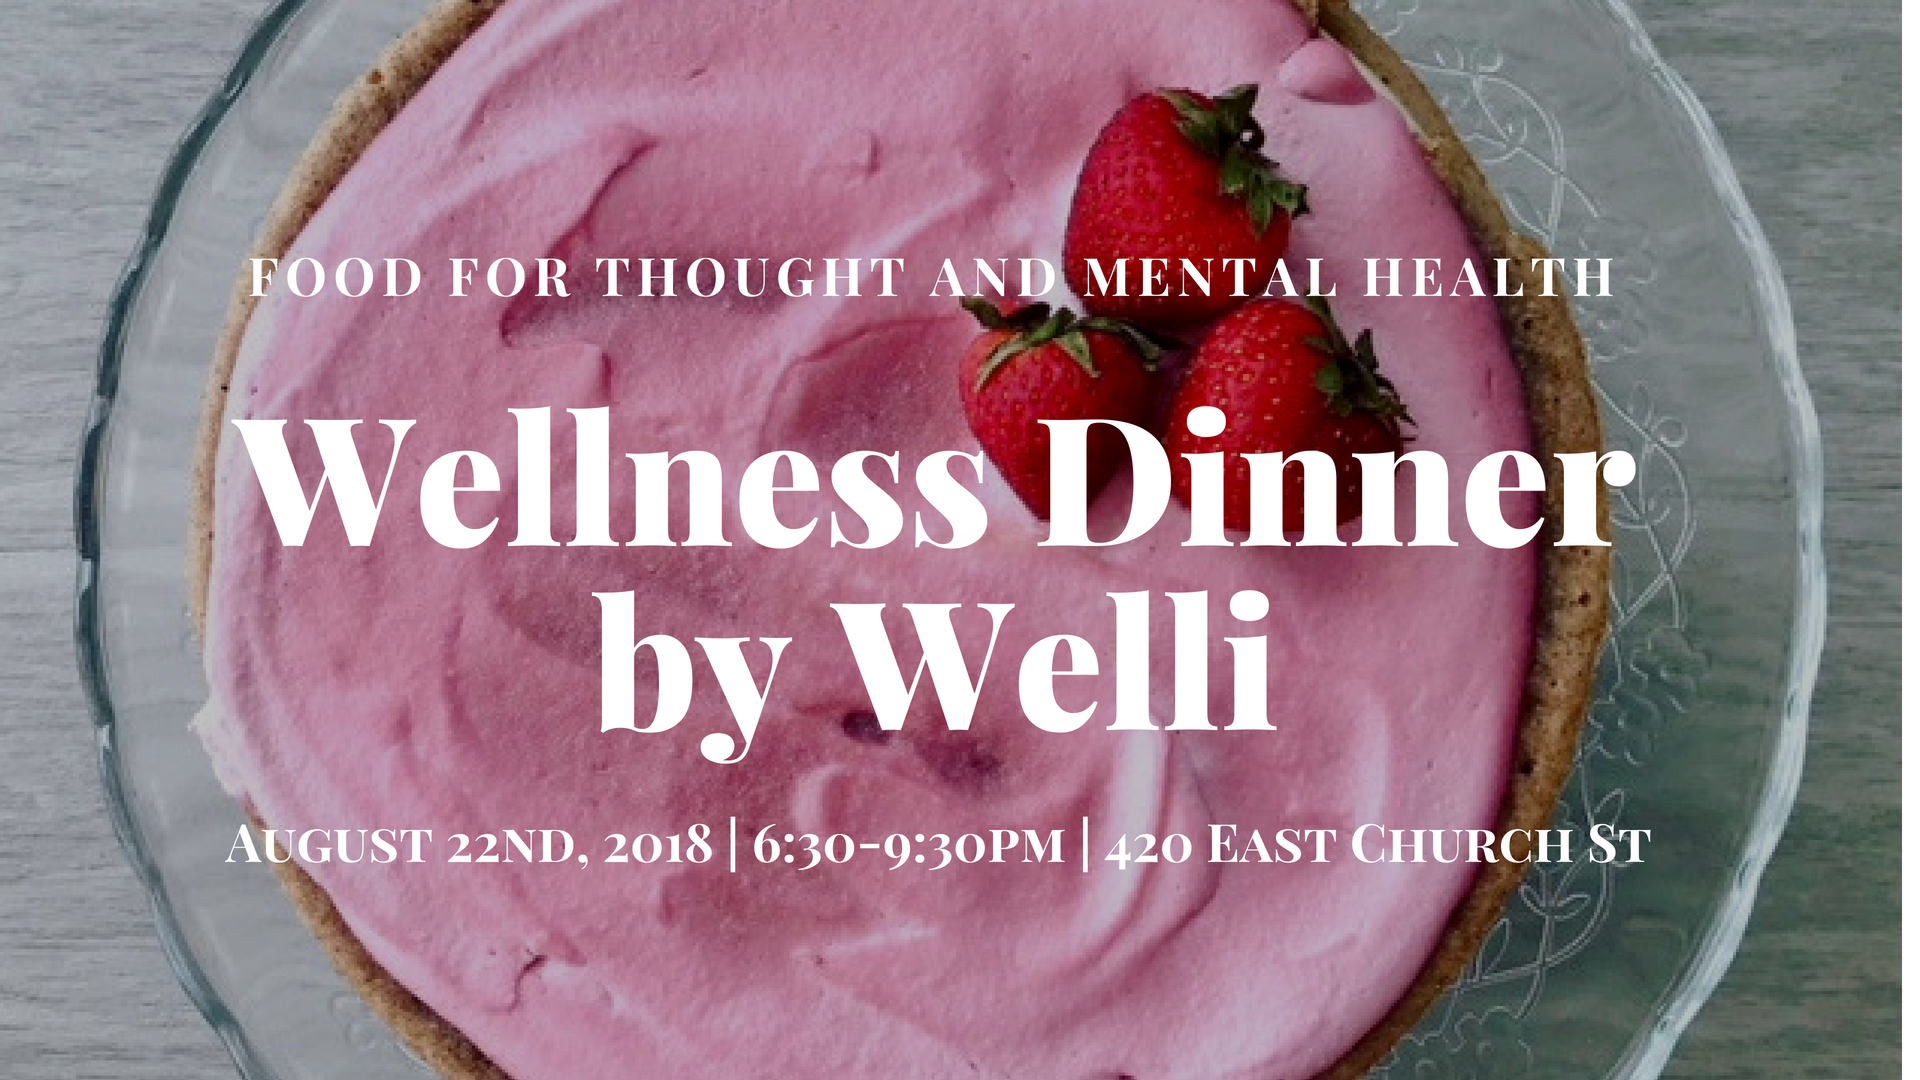 Wellness Dinner with Welli - Food for Thought